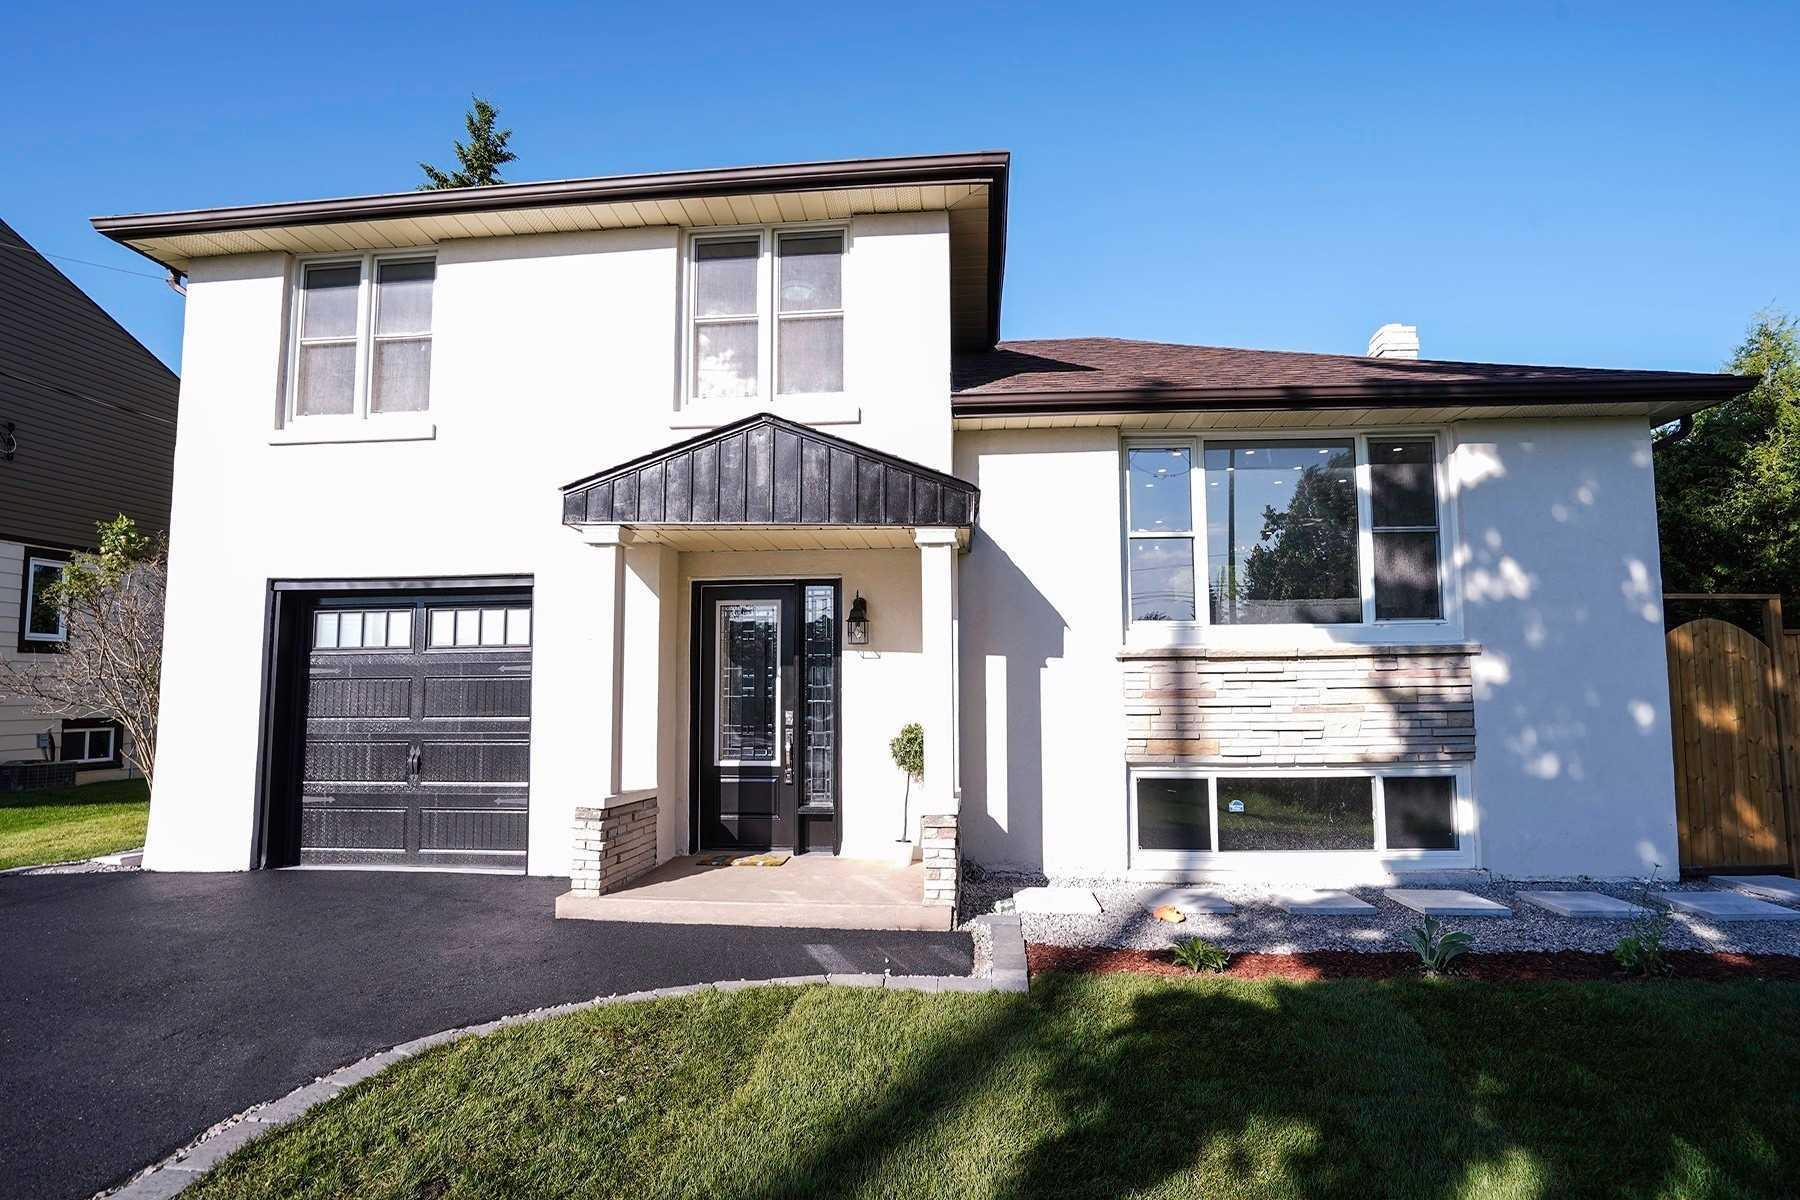 Real Estate Listings Canada - Search MLS for Houses, Condos